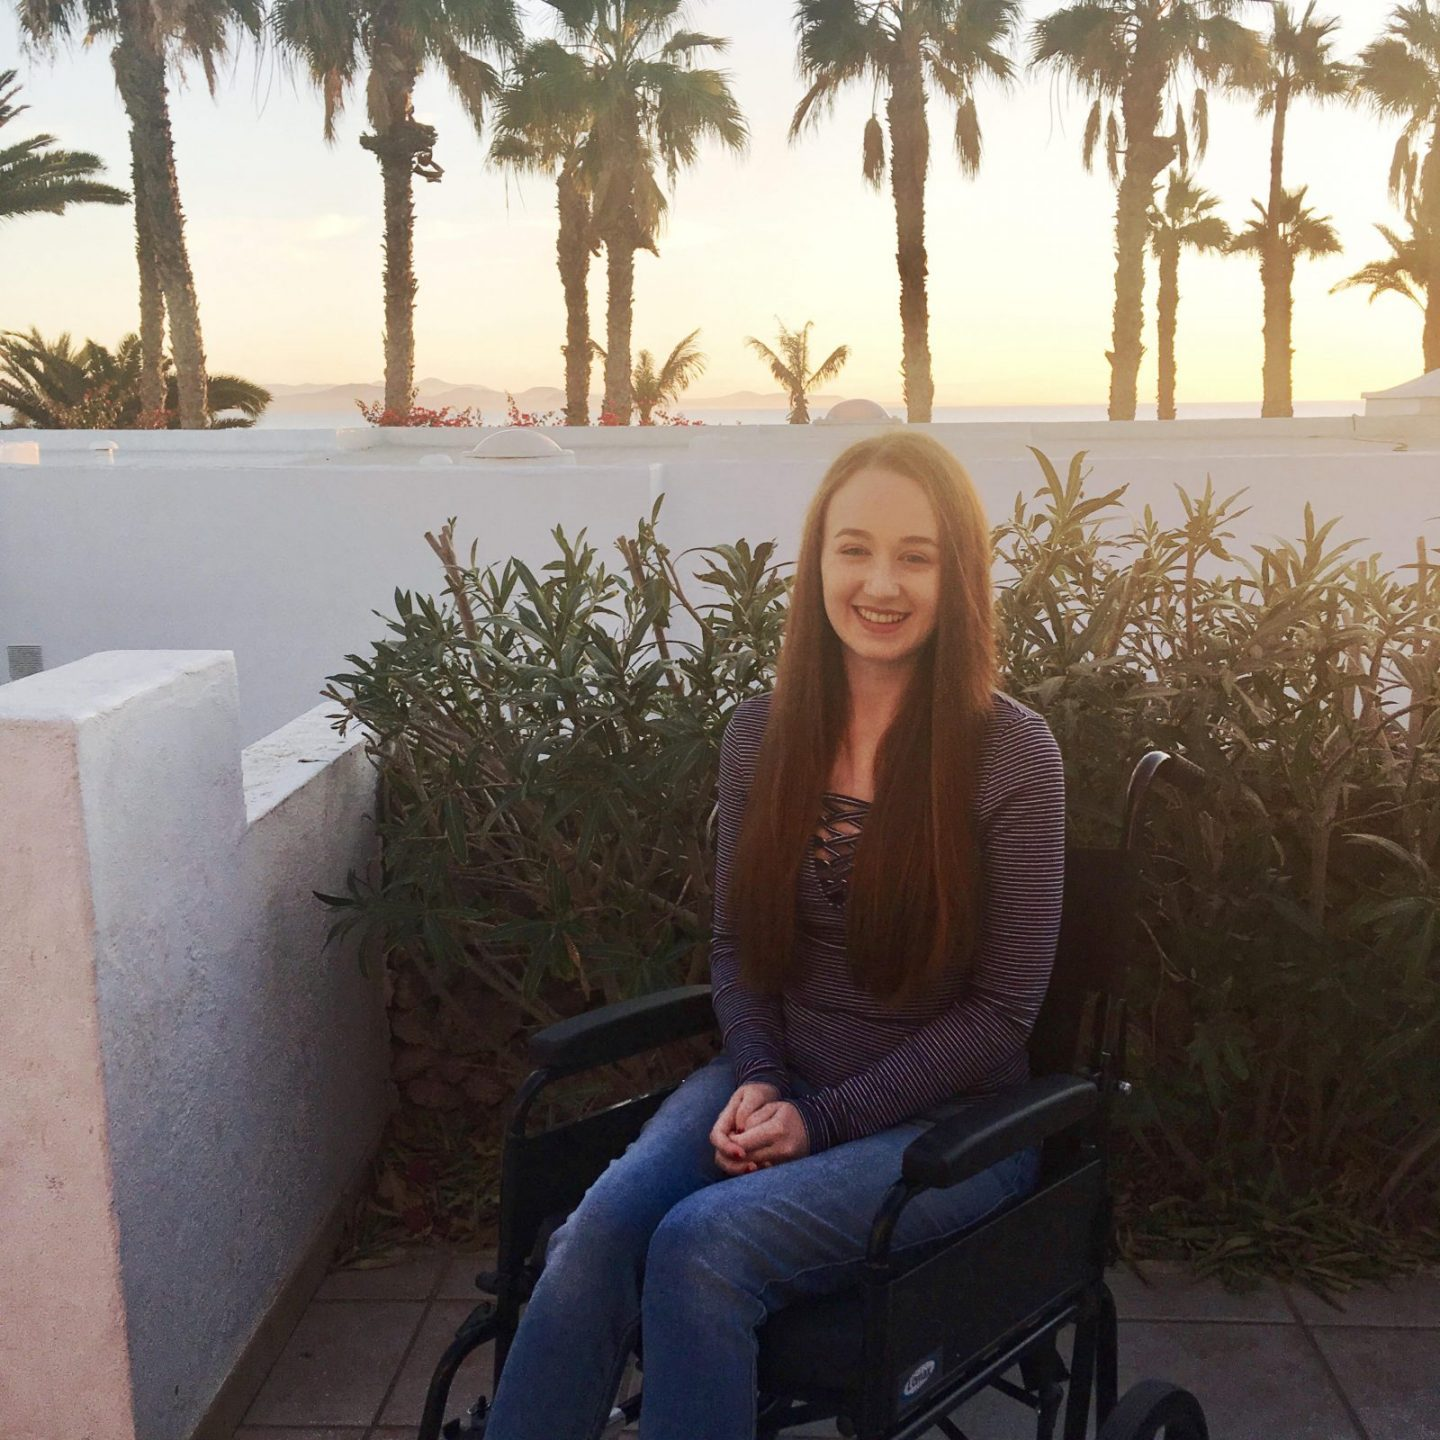 girl in jeans and t-shirt in wheelchair on an outdoor balcony